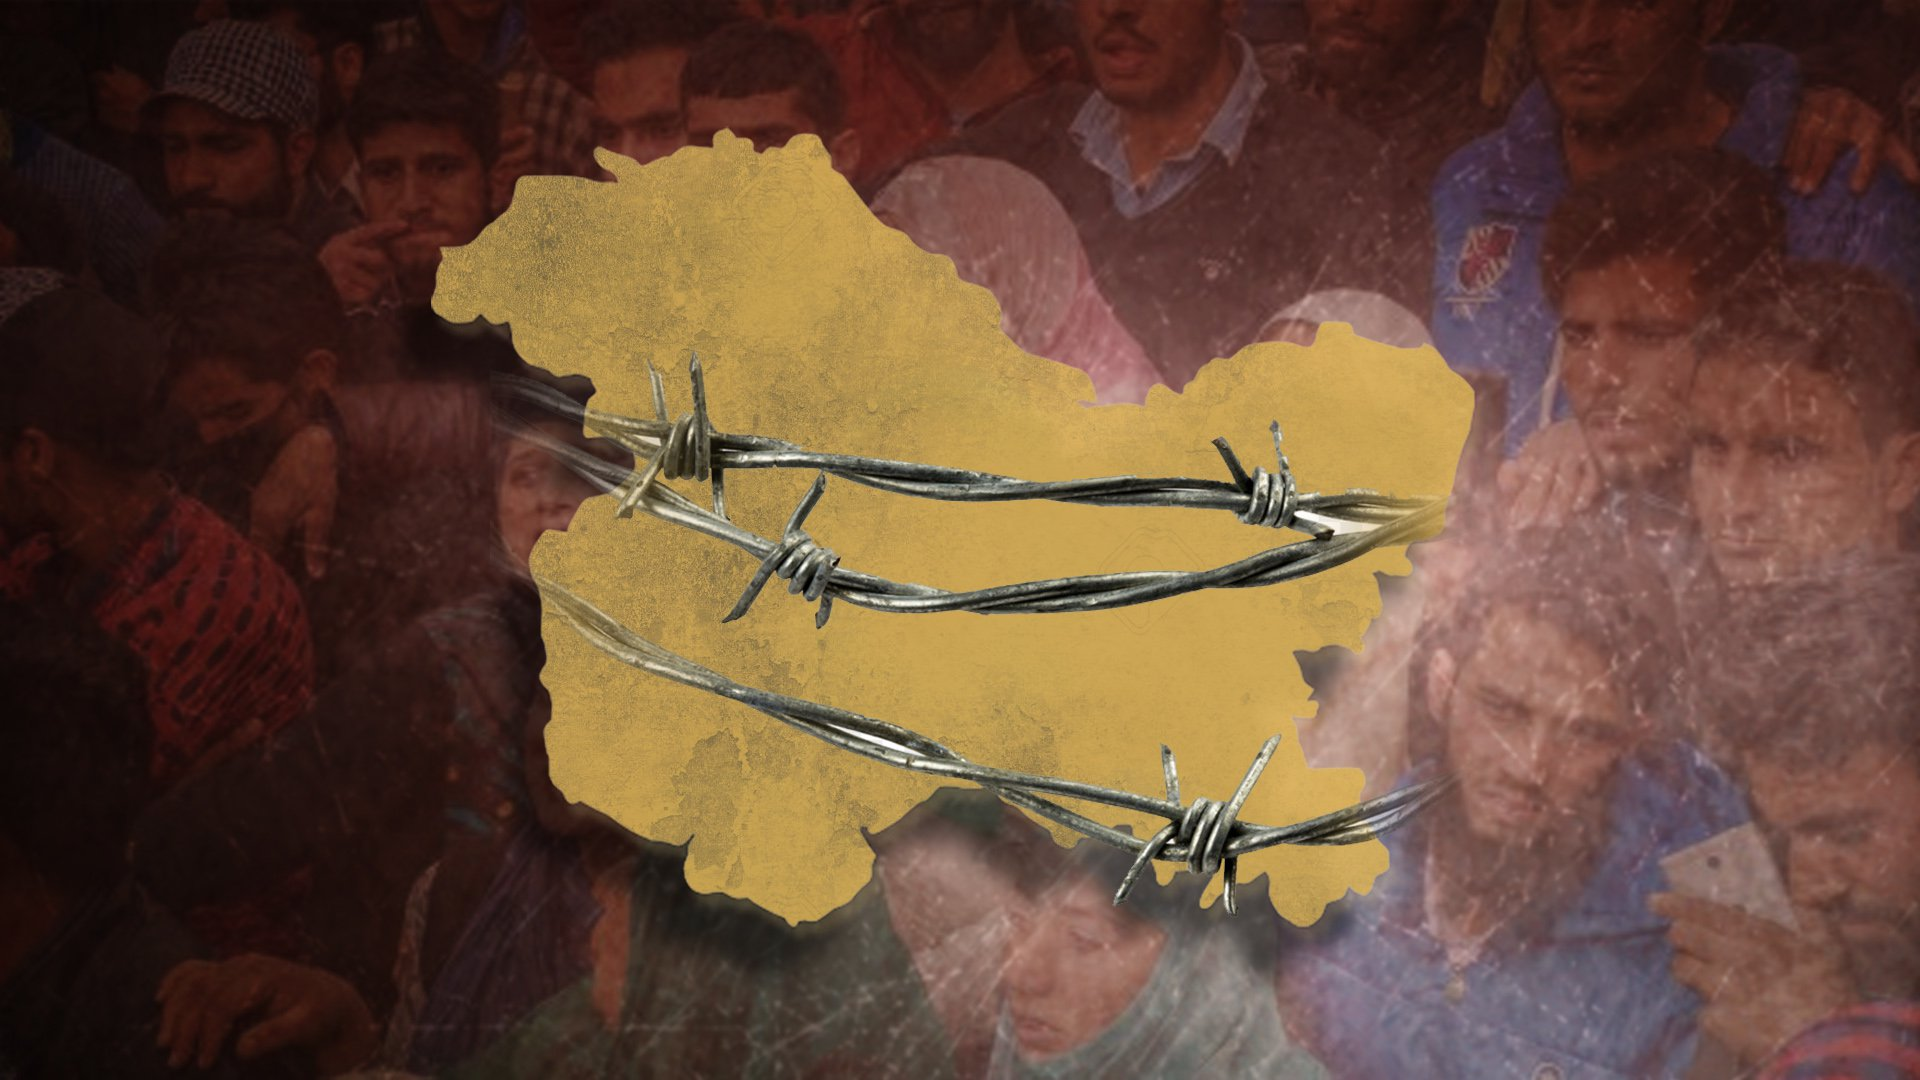 Kashmir: A Coup Against the Constitution and the Kashmiris